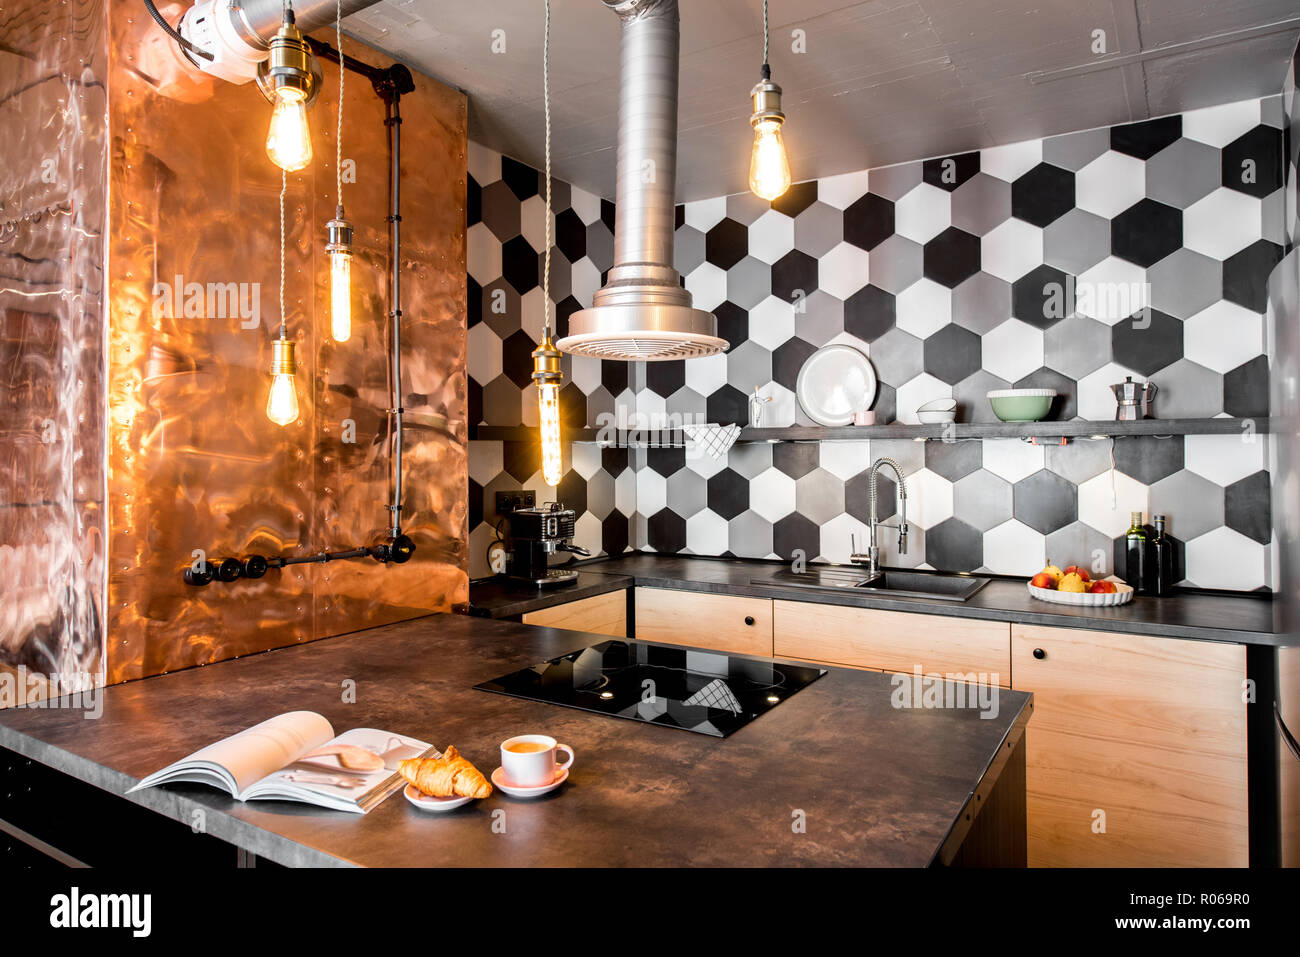 Modern Loft Kitchen Room Made In Pink And Grey Colors With Copper Wall And Hexagonal Tiles Stock Photo Alamy